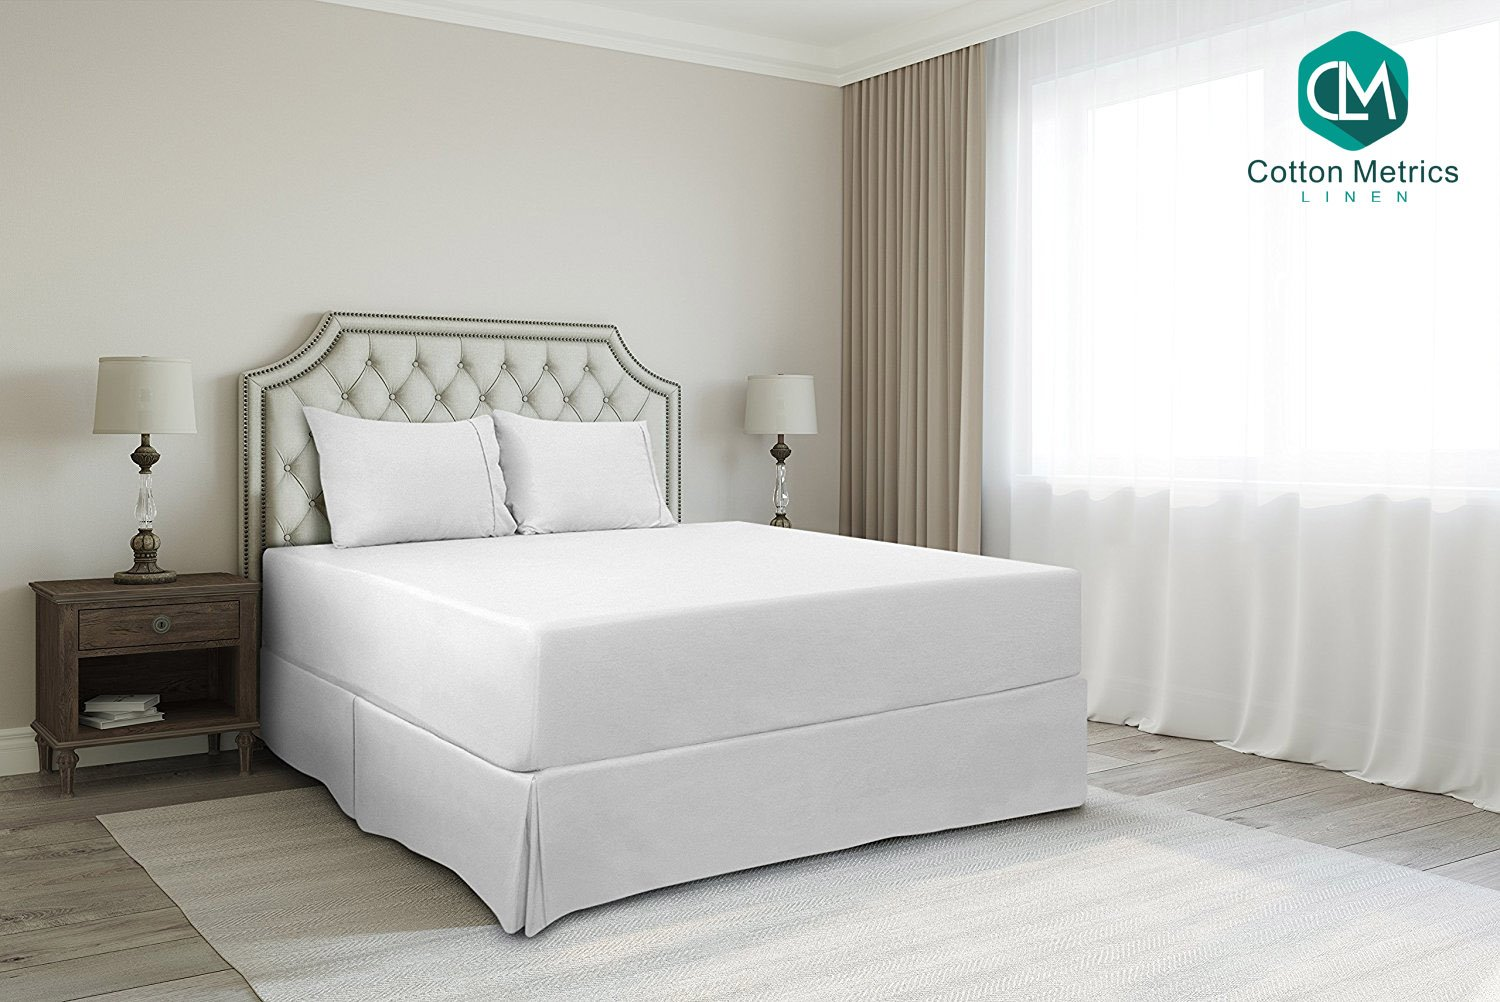 (Queen, White) - Cotton Metrics Linen Present 800TC Hotel Quality 100% Egyptian Cotton Bed Skirt 50cm Drop length Queen Size White Solid B078VC36M2 ホワイト クイーン